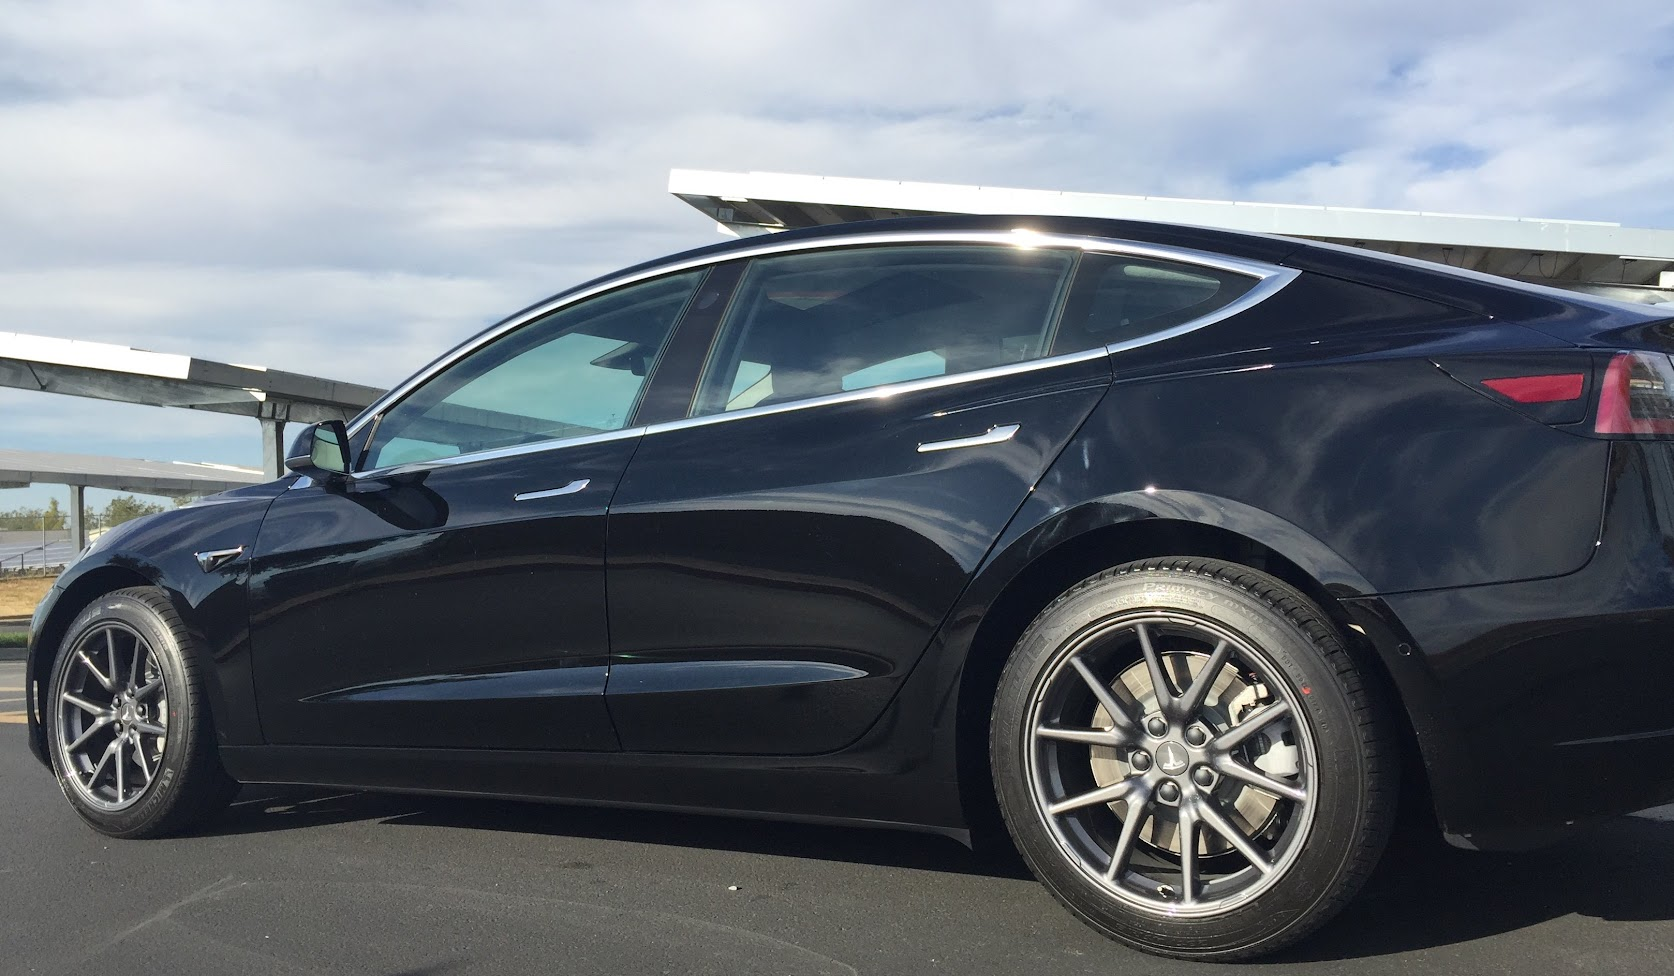 """Pictures of Model 3s with 18"""" wheels without aero covers ..."""